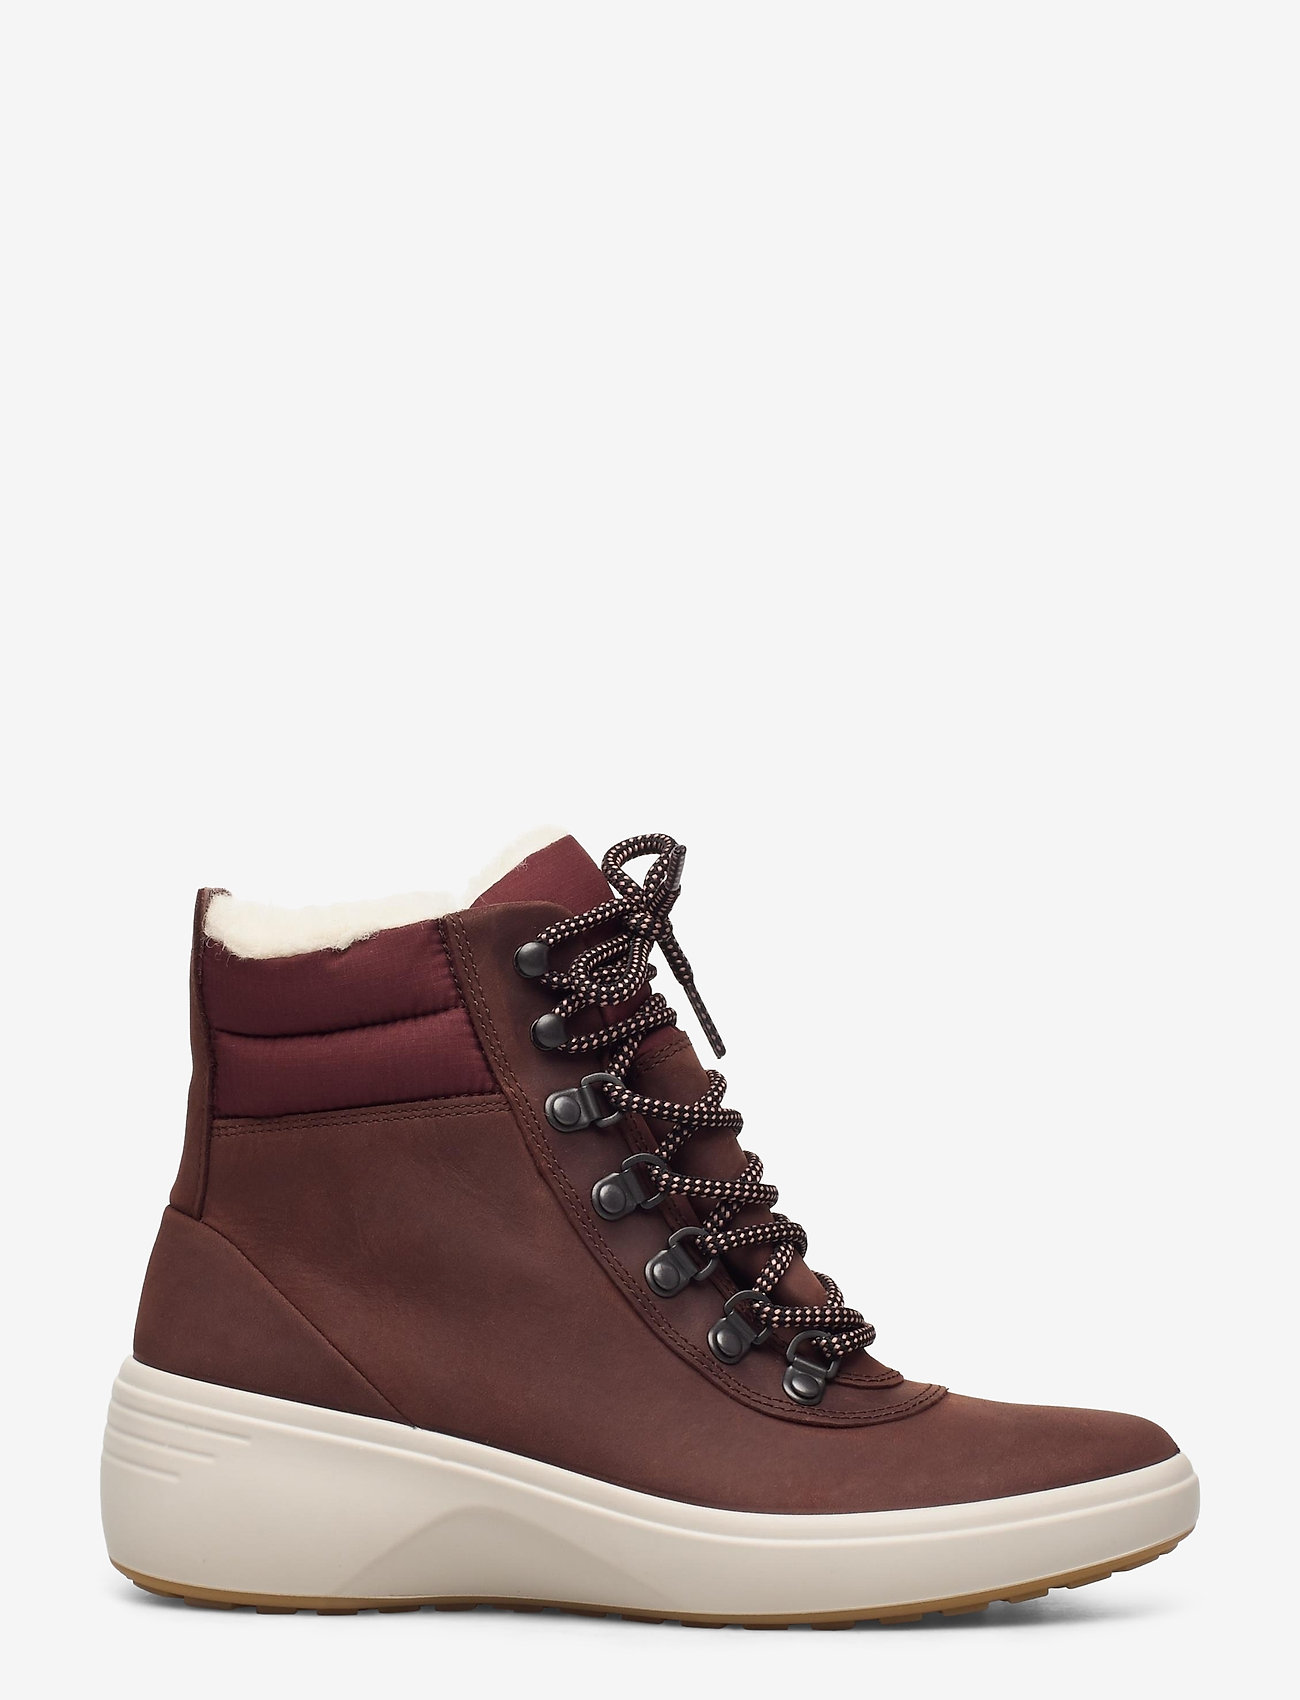 ECCO - SOFT 7 WEDGE TRED - flat ankle boots - chocolate/chocolate - 1